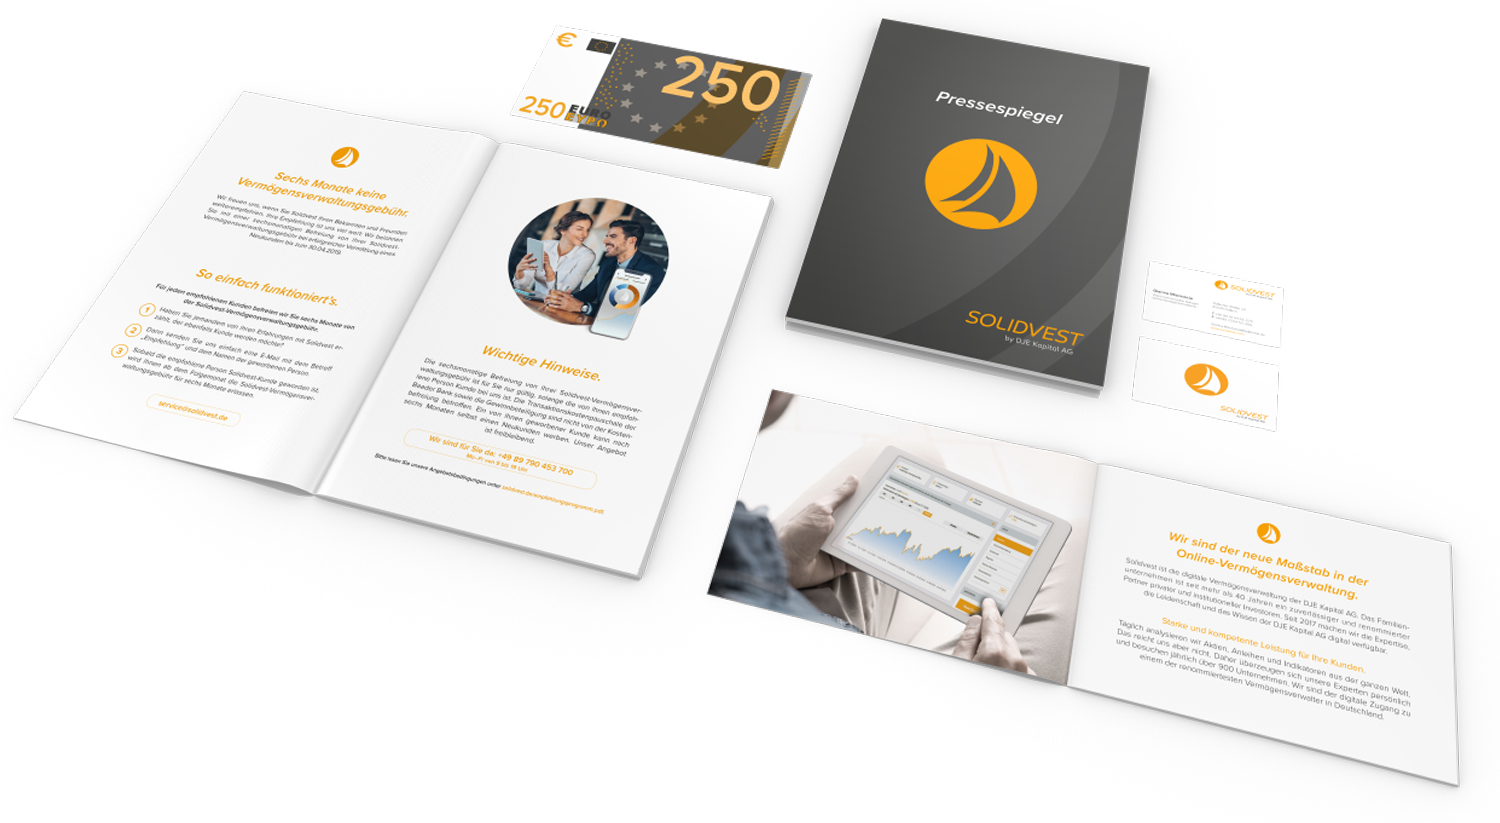 Solidvest Marketing Kit